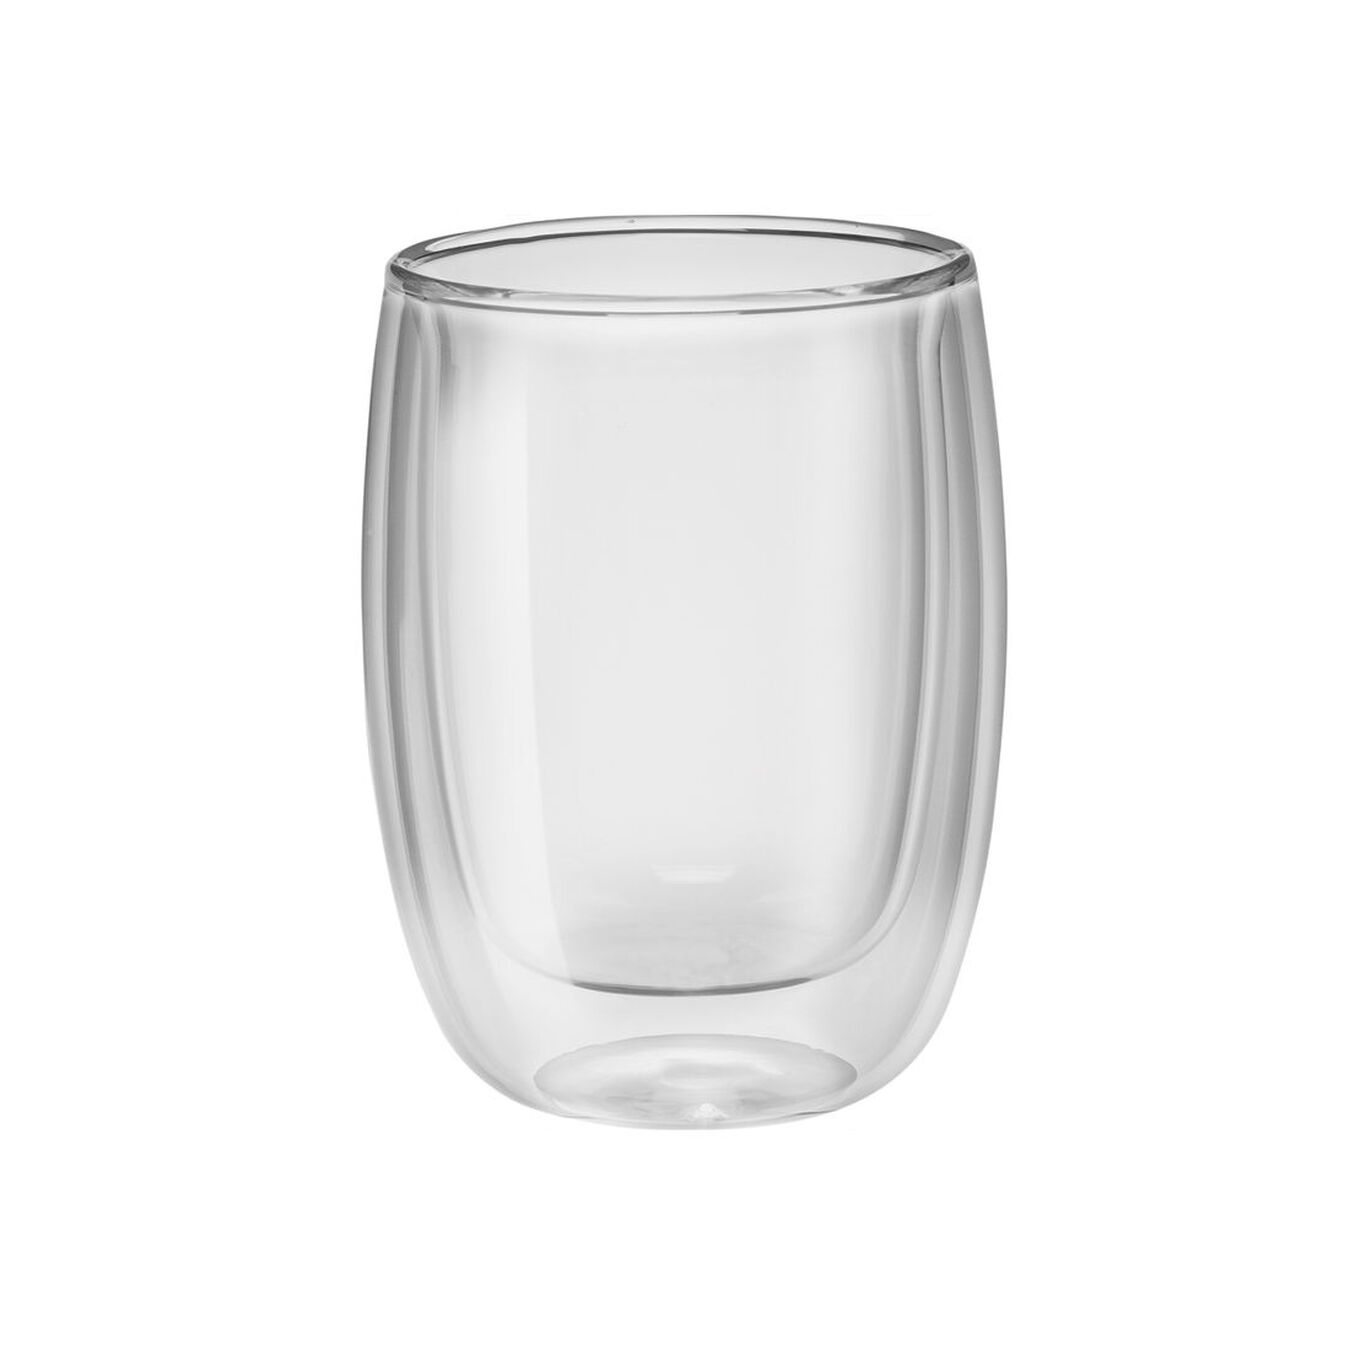 2-pc Double-Wall Glass Coffee Cup Set,,large 2